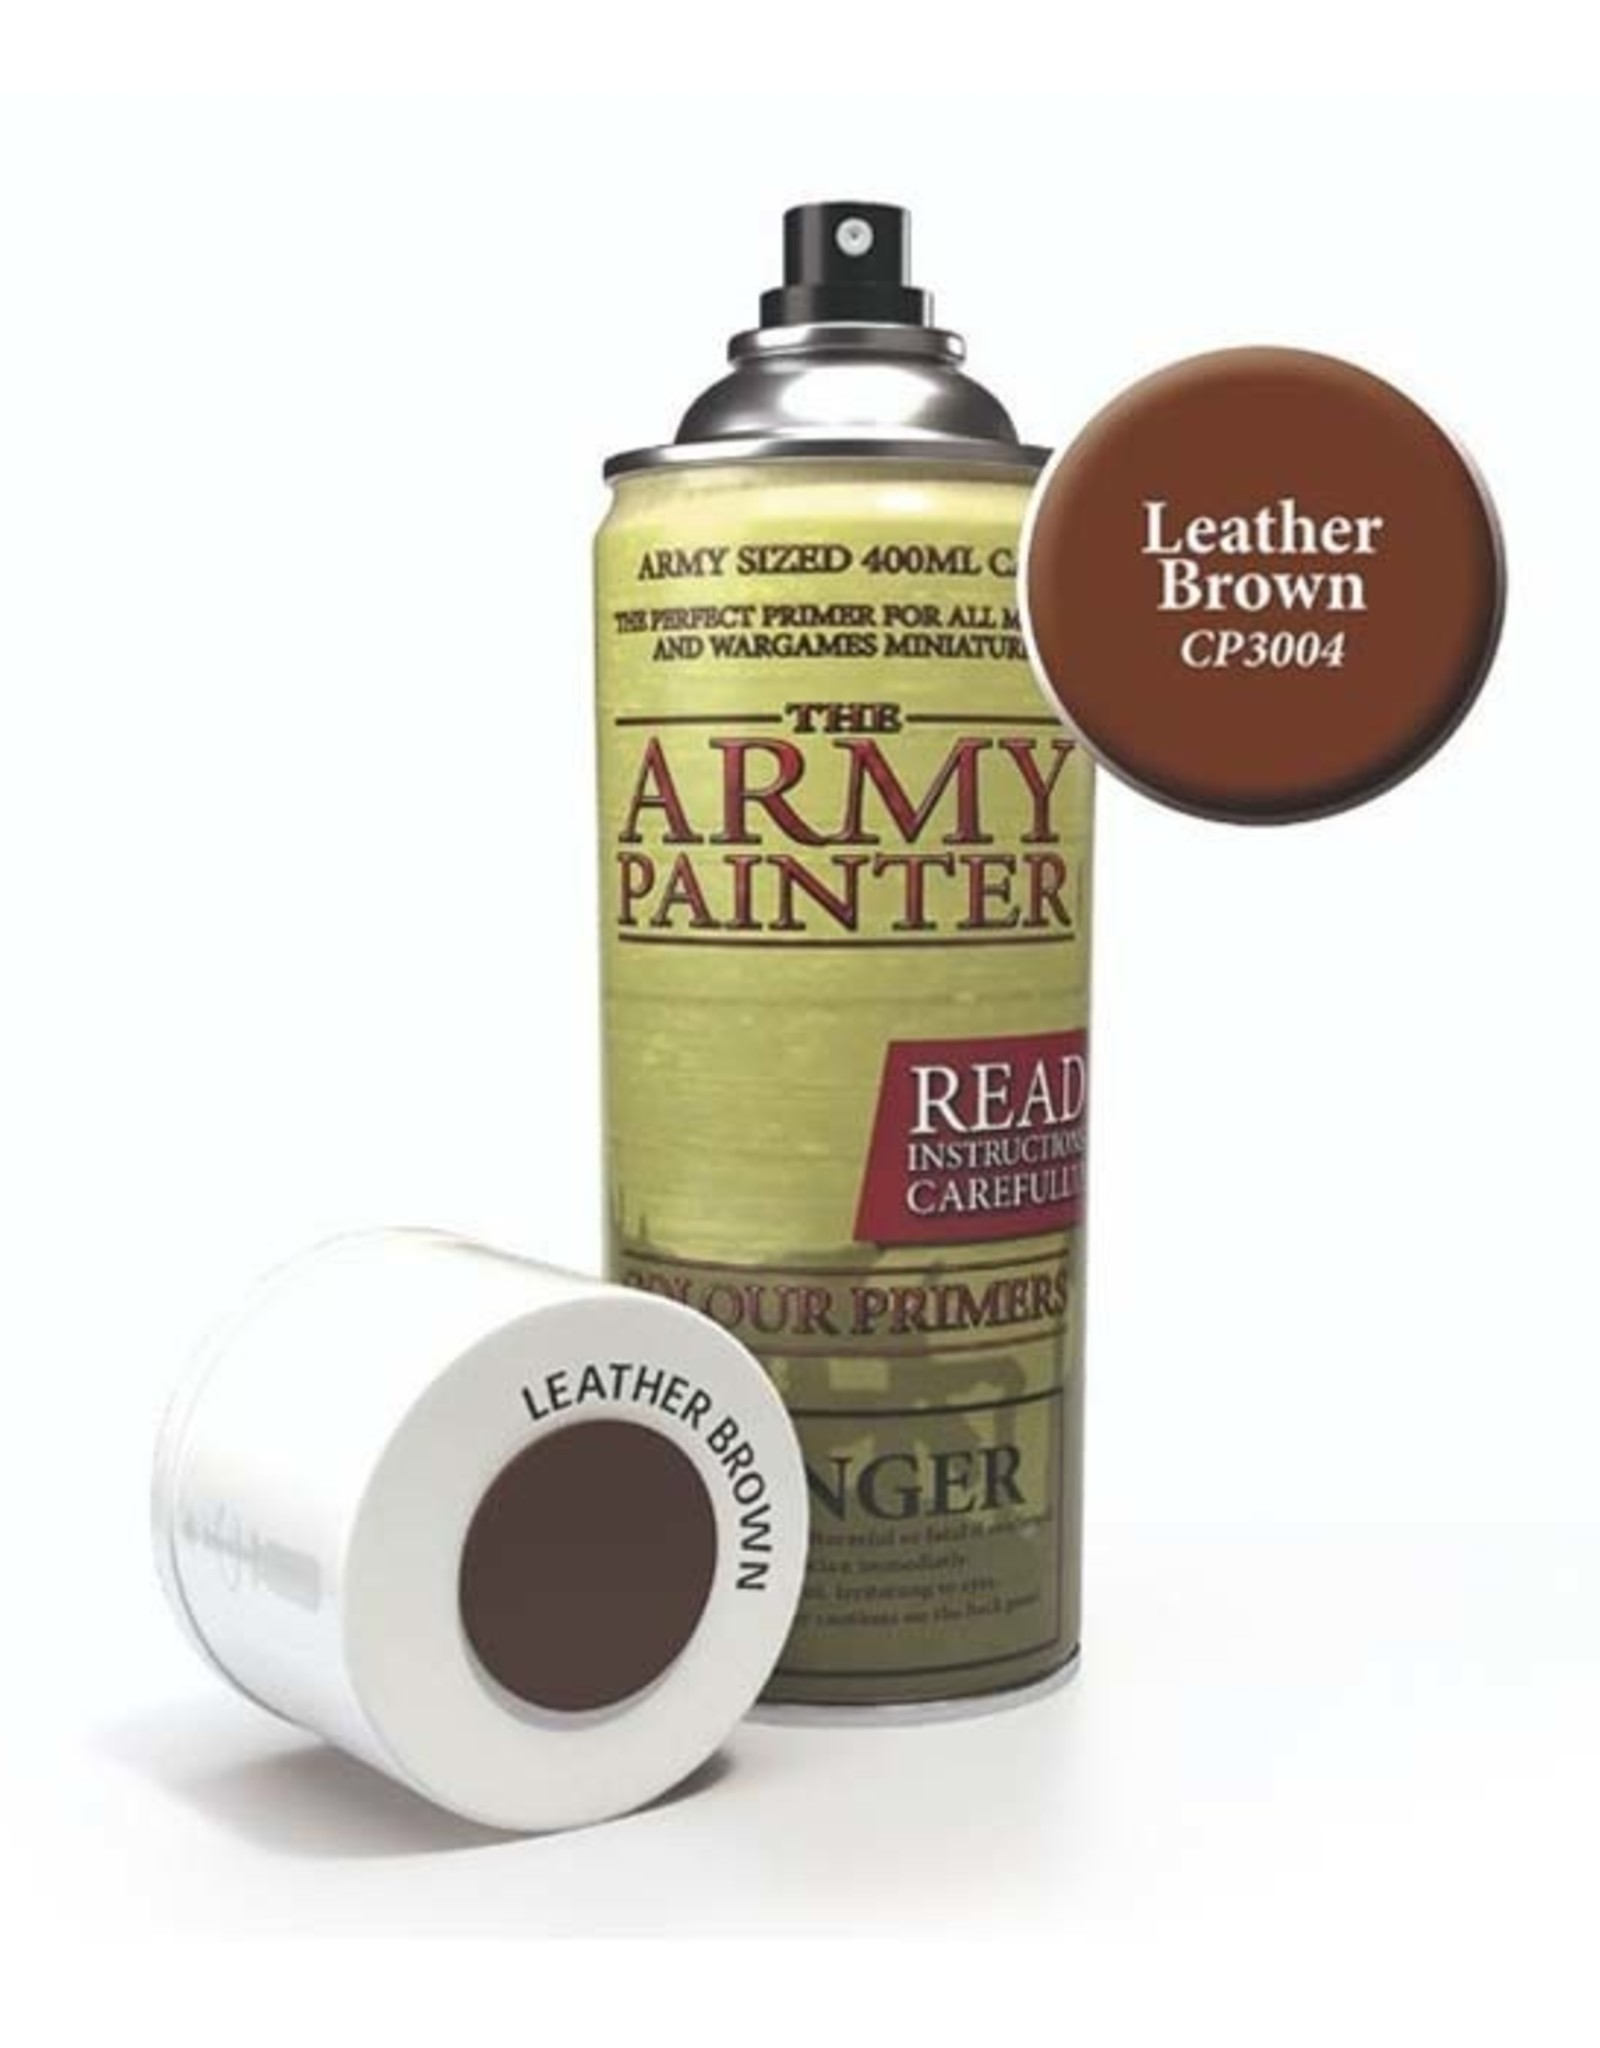 The Army Painter Army Painter: Colour Primer - Leather Brown